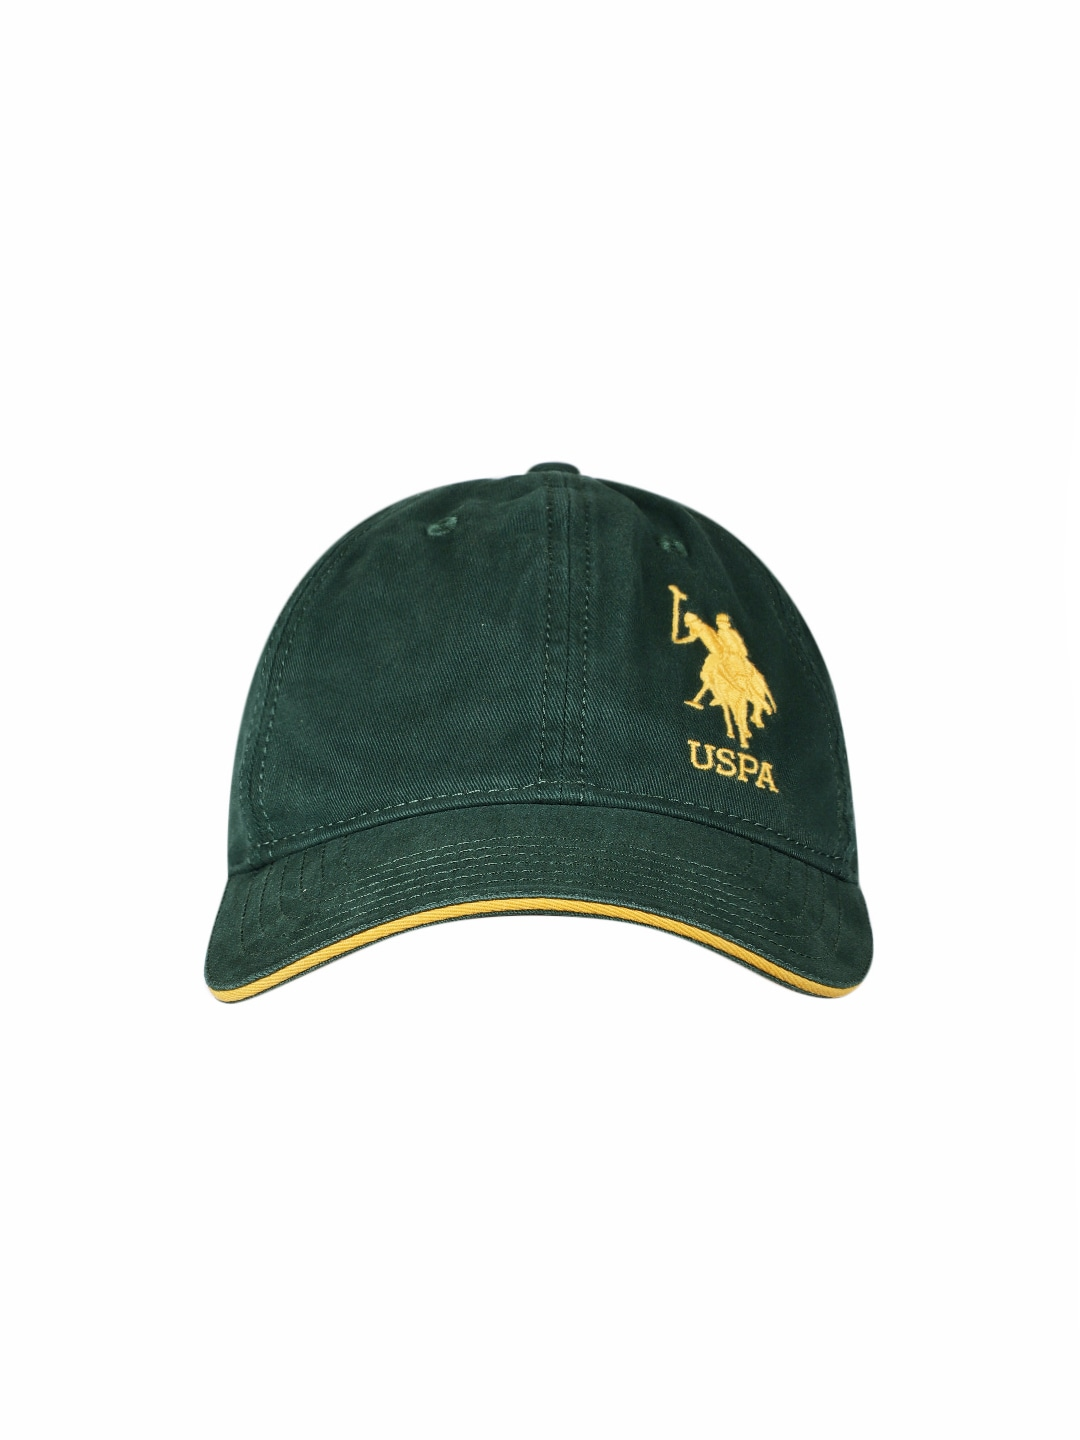 Polo Casual Caps - Buy Polo Casual Caps online in India bc246a63e09